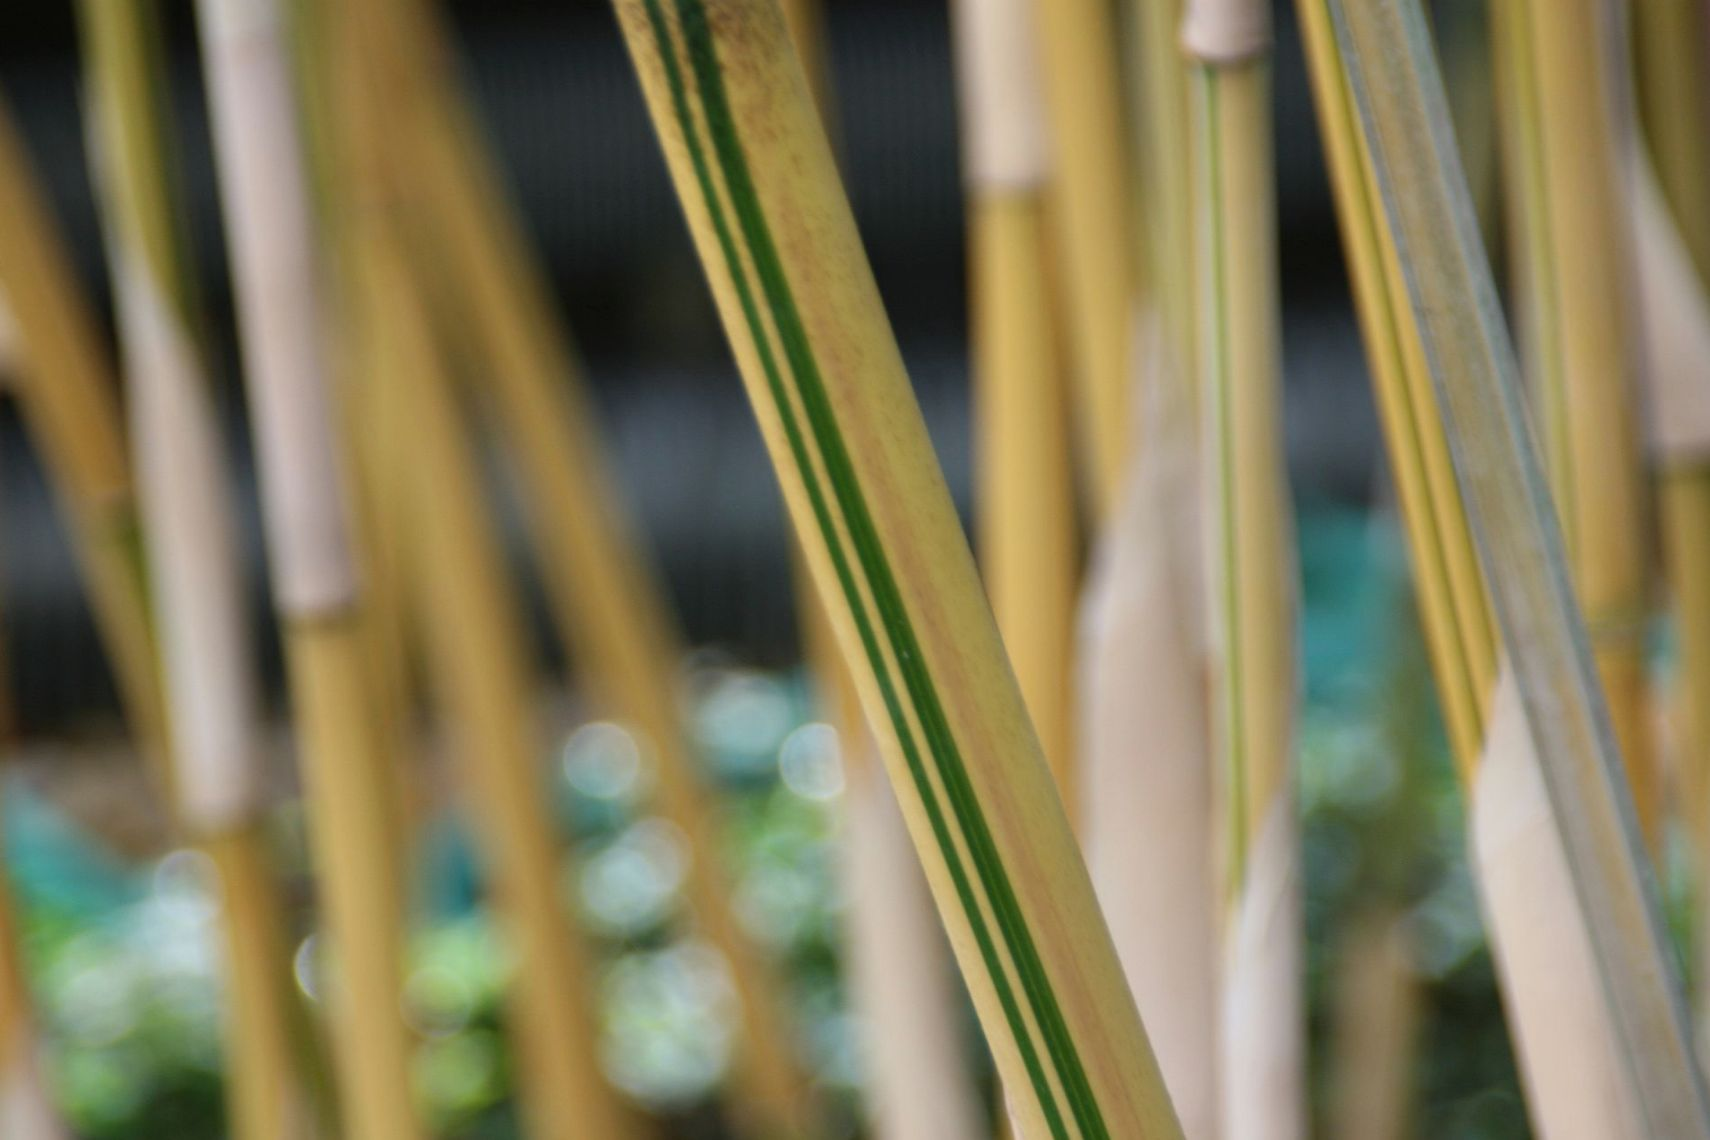 Bamboo with Stripes: Variegated varieties